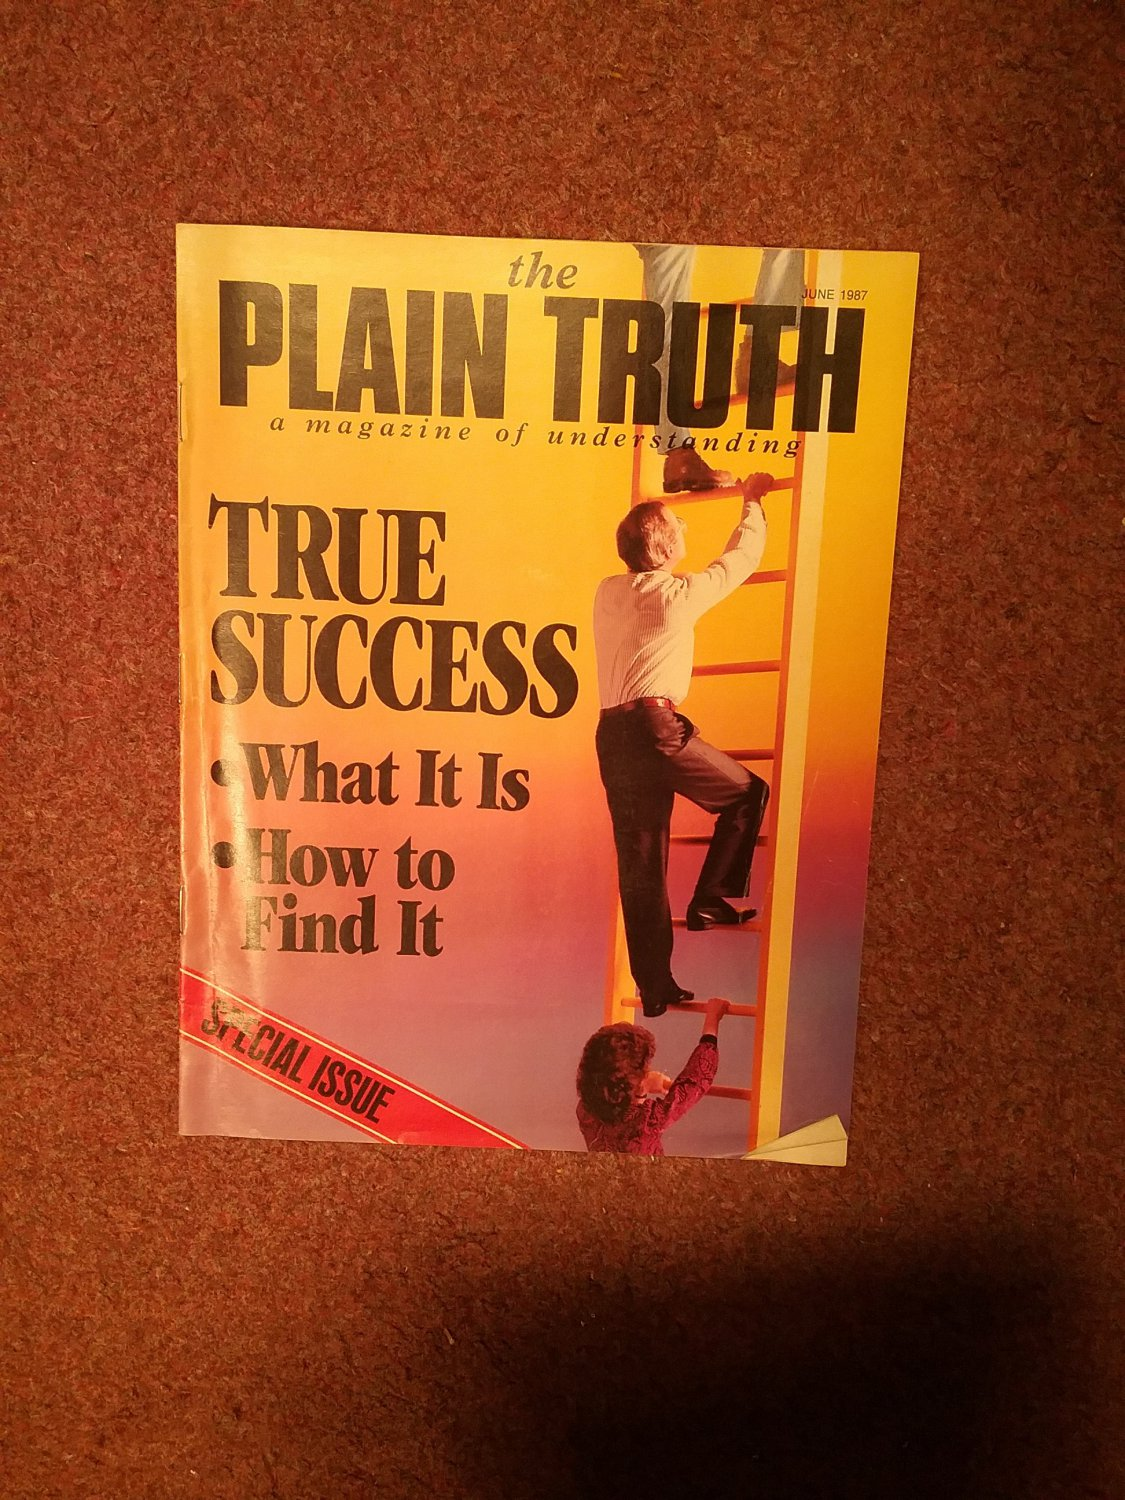 Plain Truth Magazine, June 1987 True Success 70716808